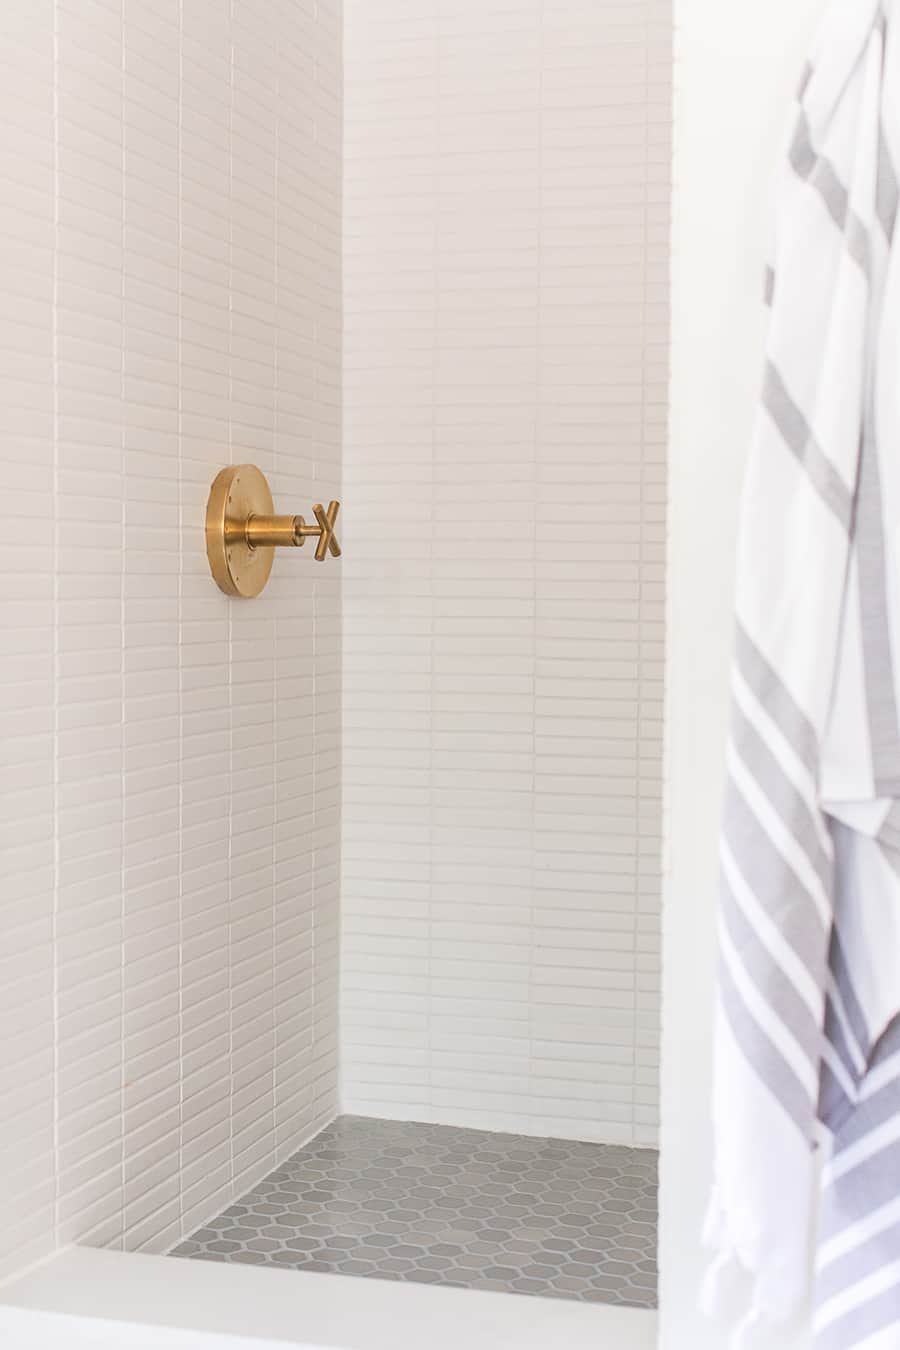 Fireclay shower tile with brass